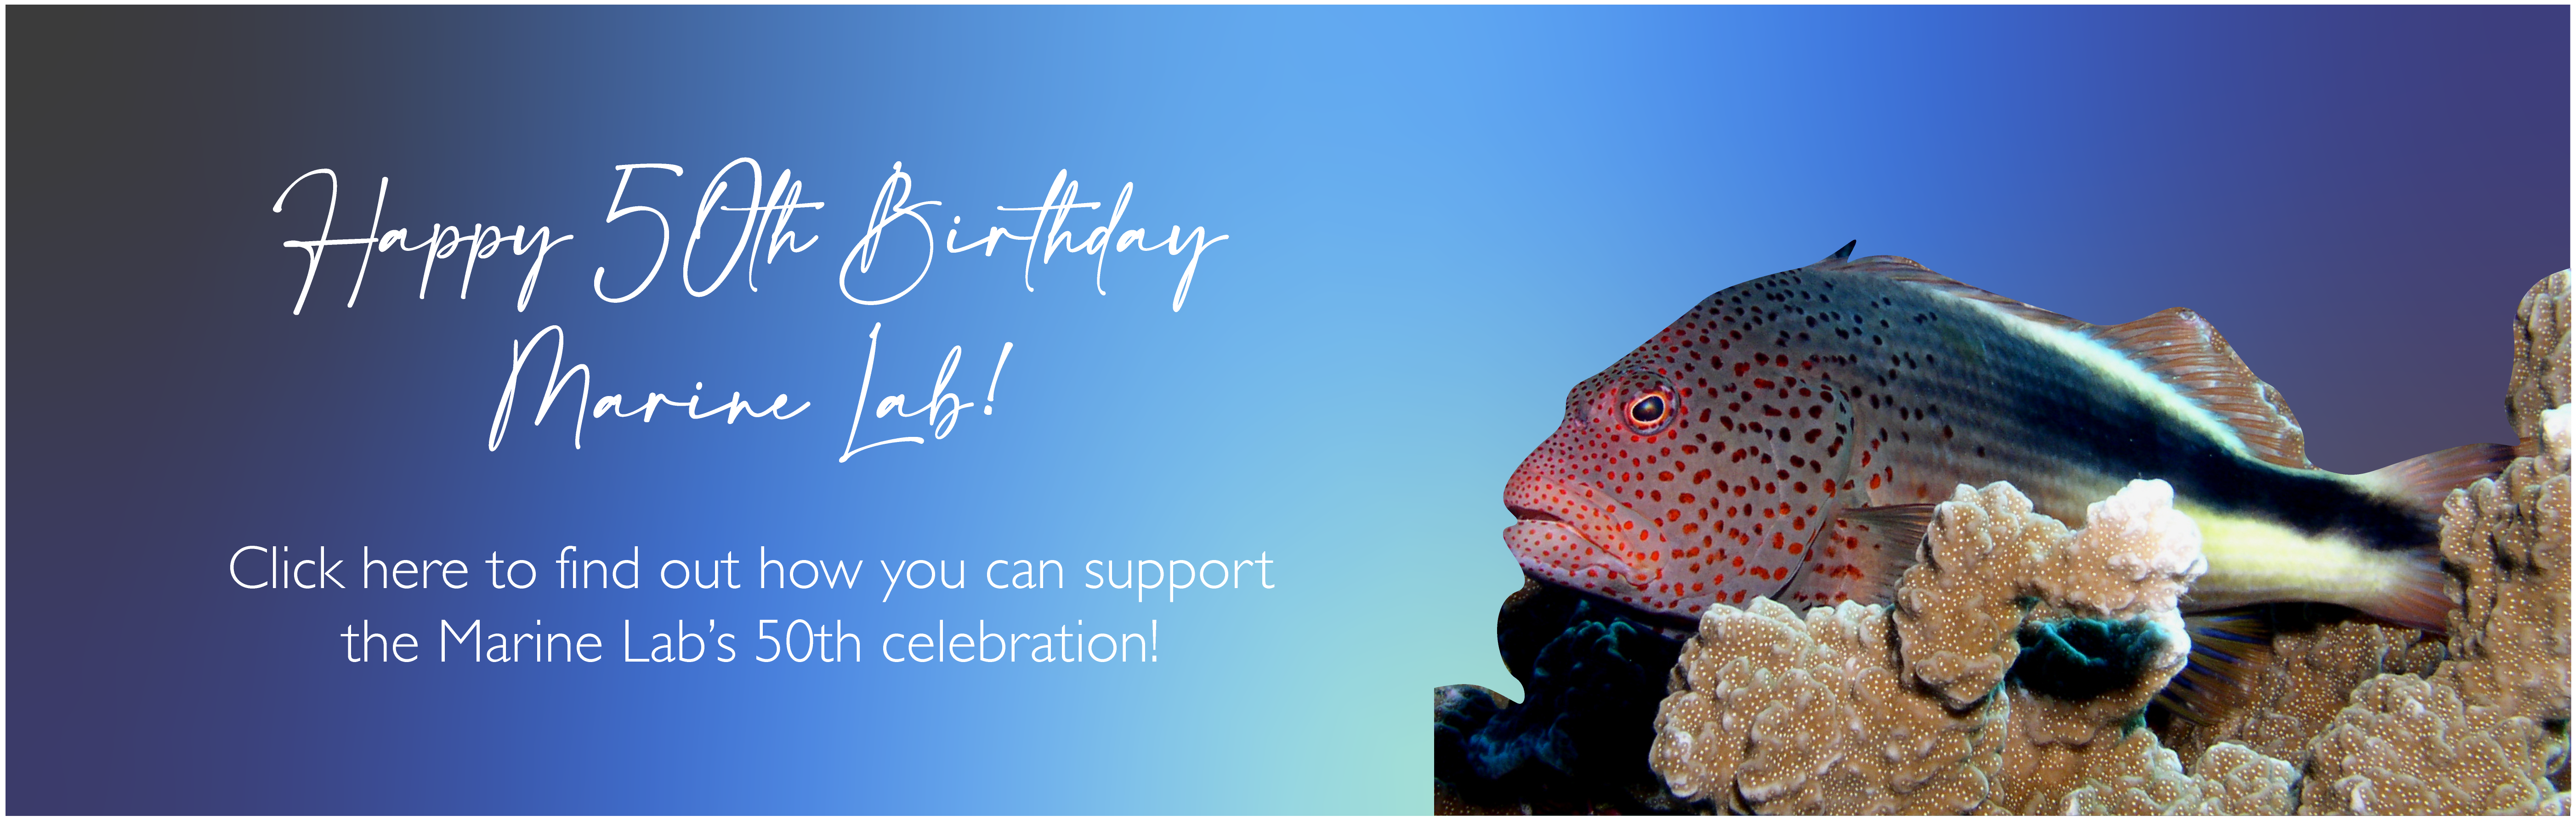 Happy 50th Birthday Marine Lab! Click here to find out how you can support the Marine Lab's 50th celebration!